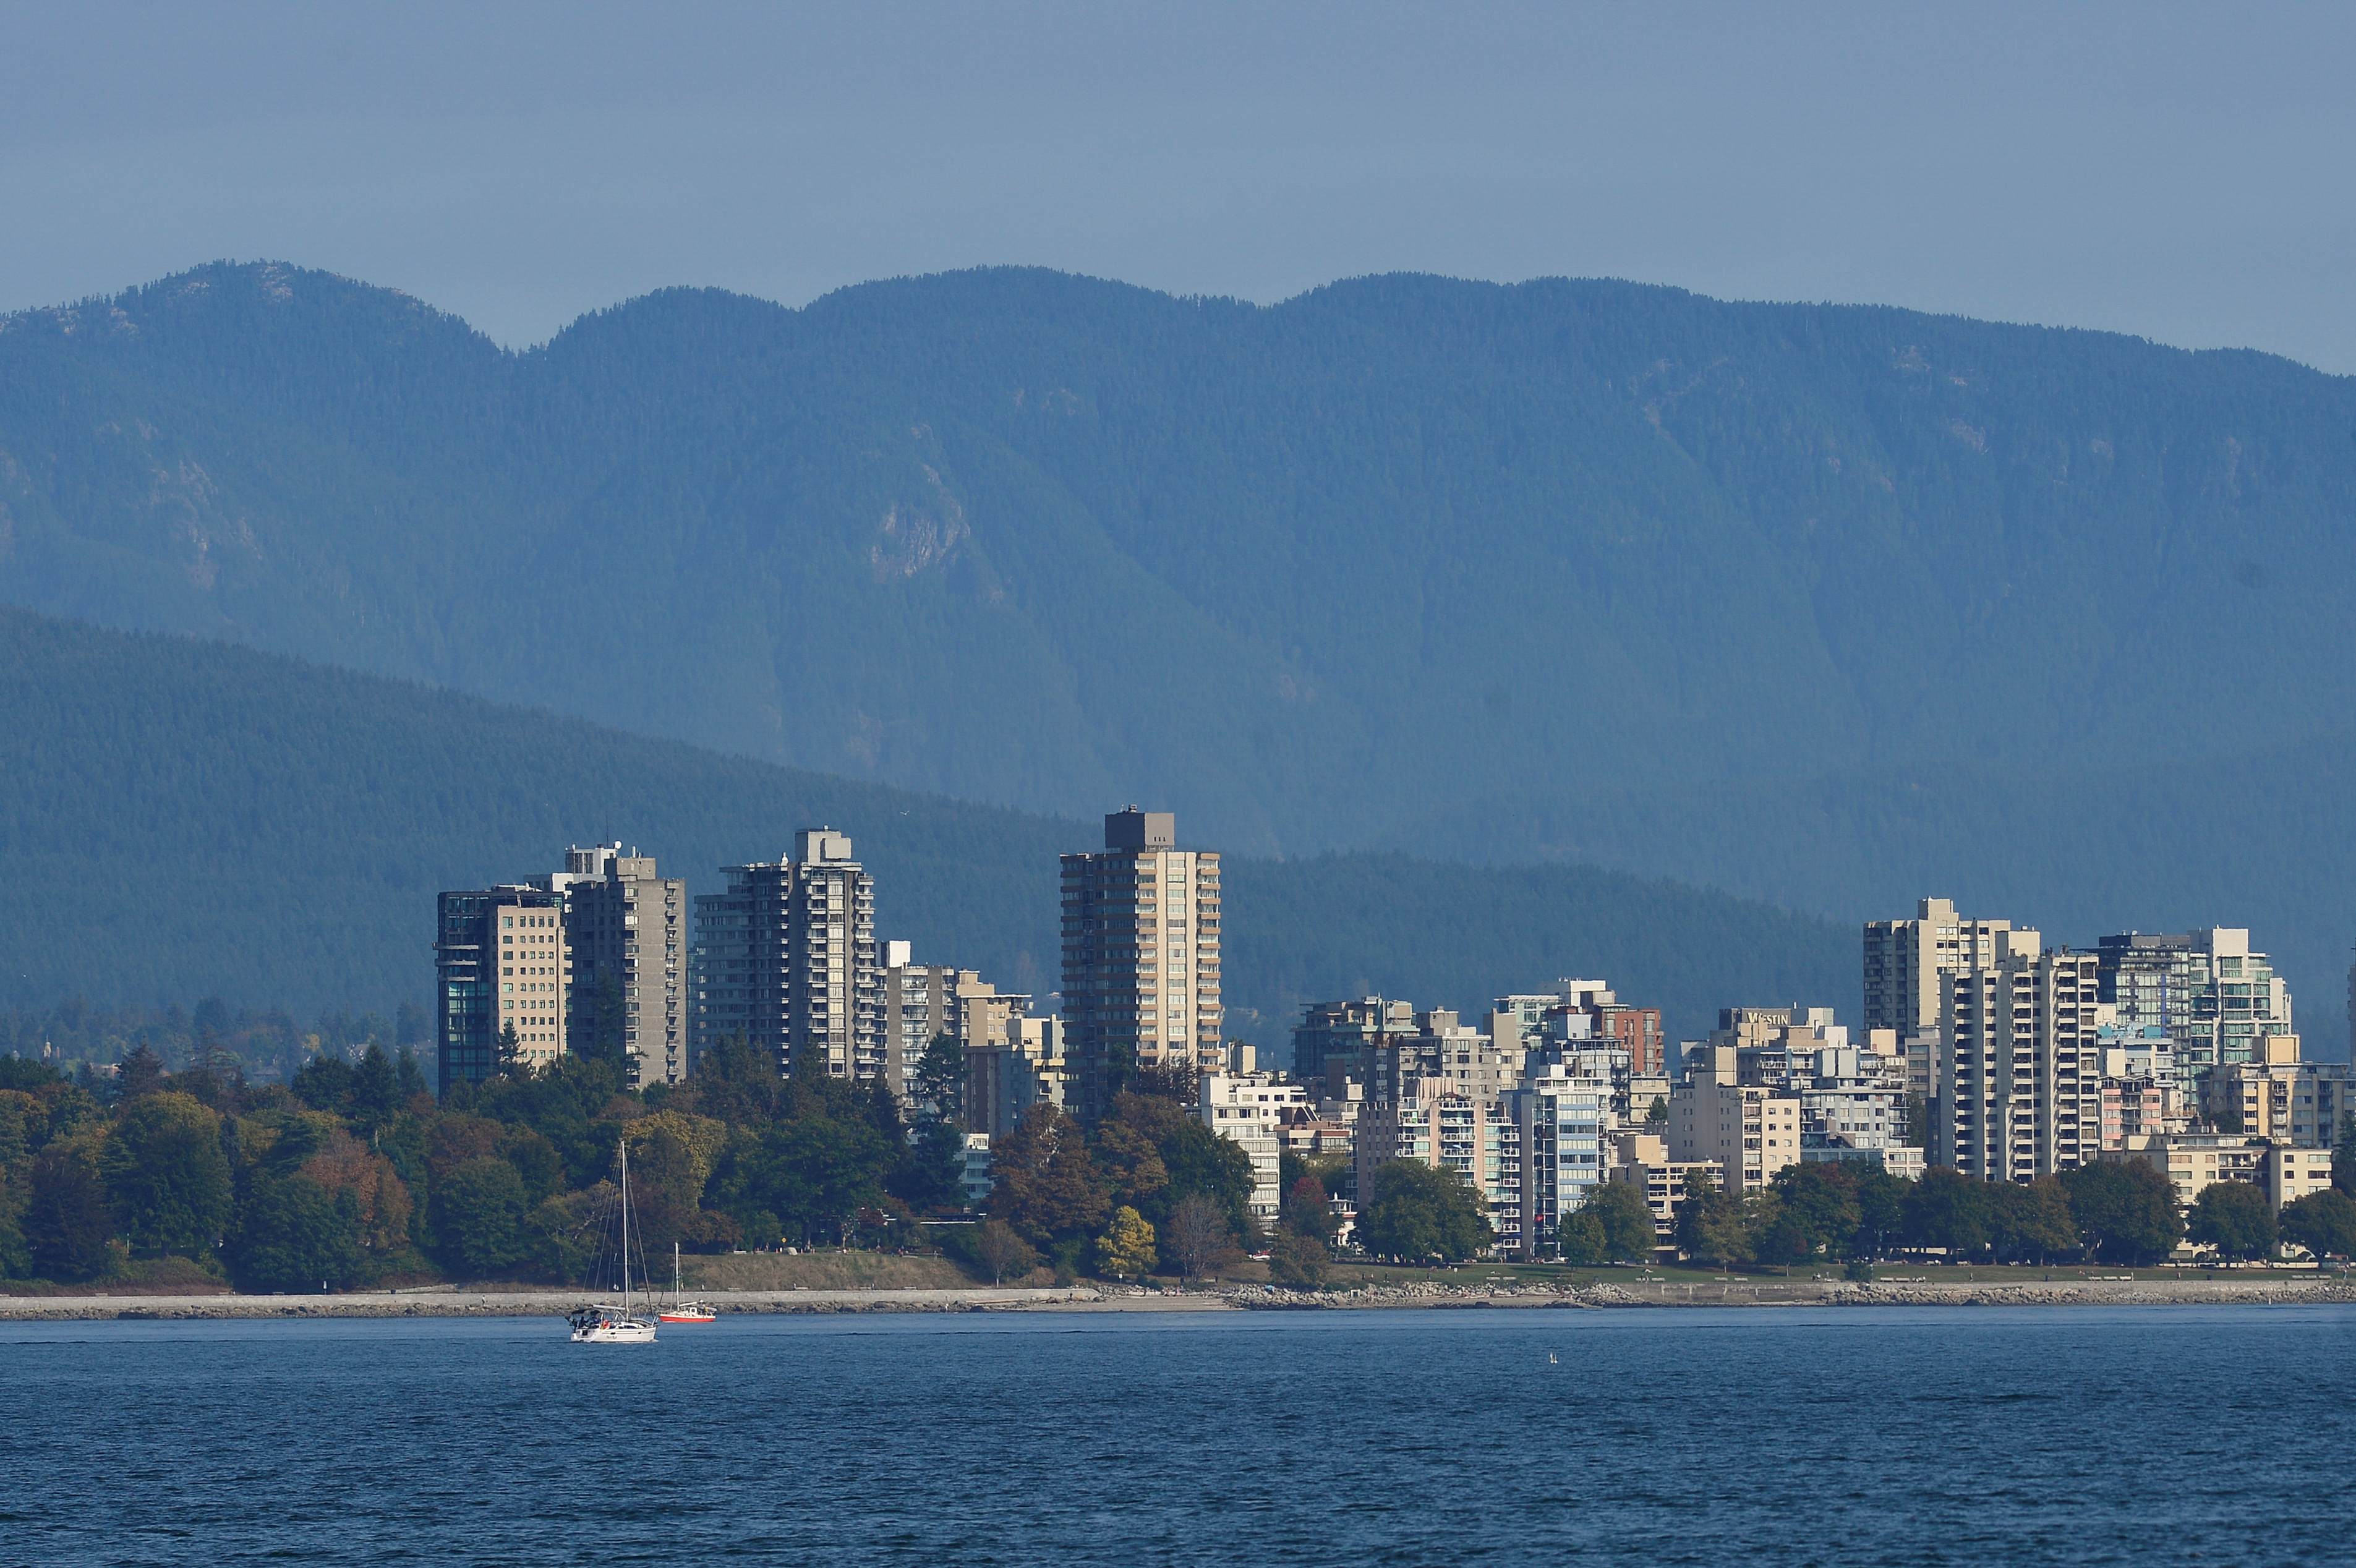 The West End is seen on the mountain-backed skyline of Vancouver, British Columbia, Canada September 30, 2020. REUTERS/Jennifer Gauthier/File Photo